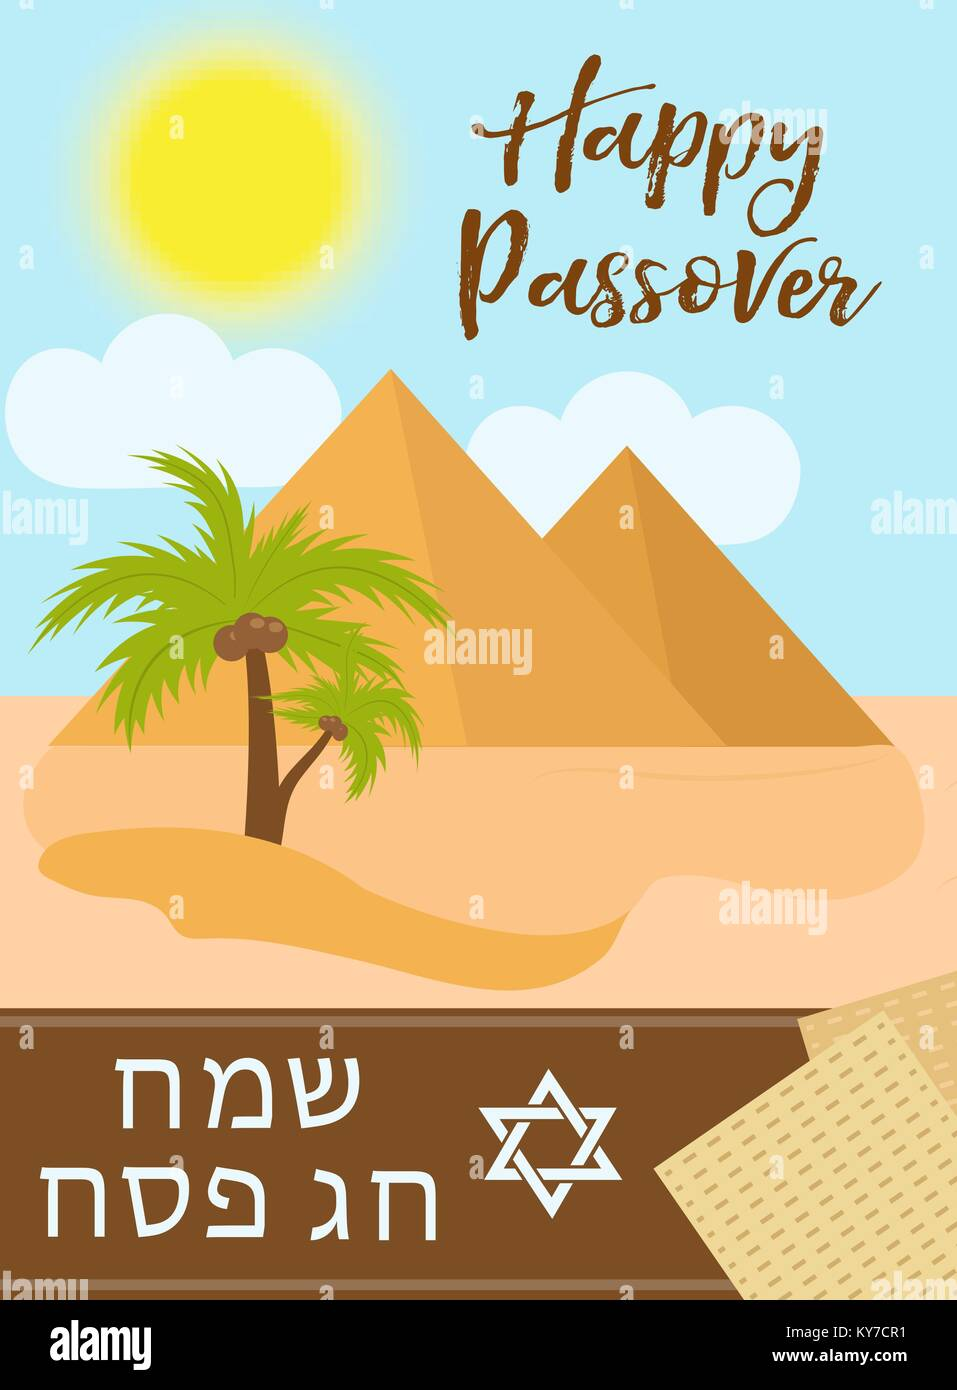 Passover poster invitation flyer greeting card pesach template passover poster invitation flyer greeting card pesach template for your design with egyptian pyramids desert jewish holiday background m4hsunfo